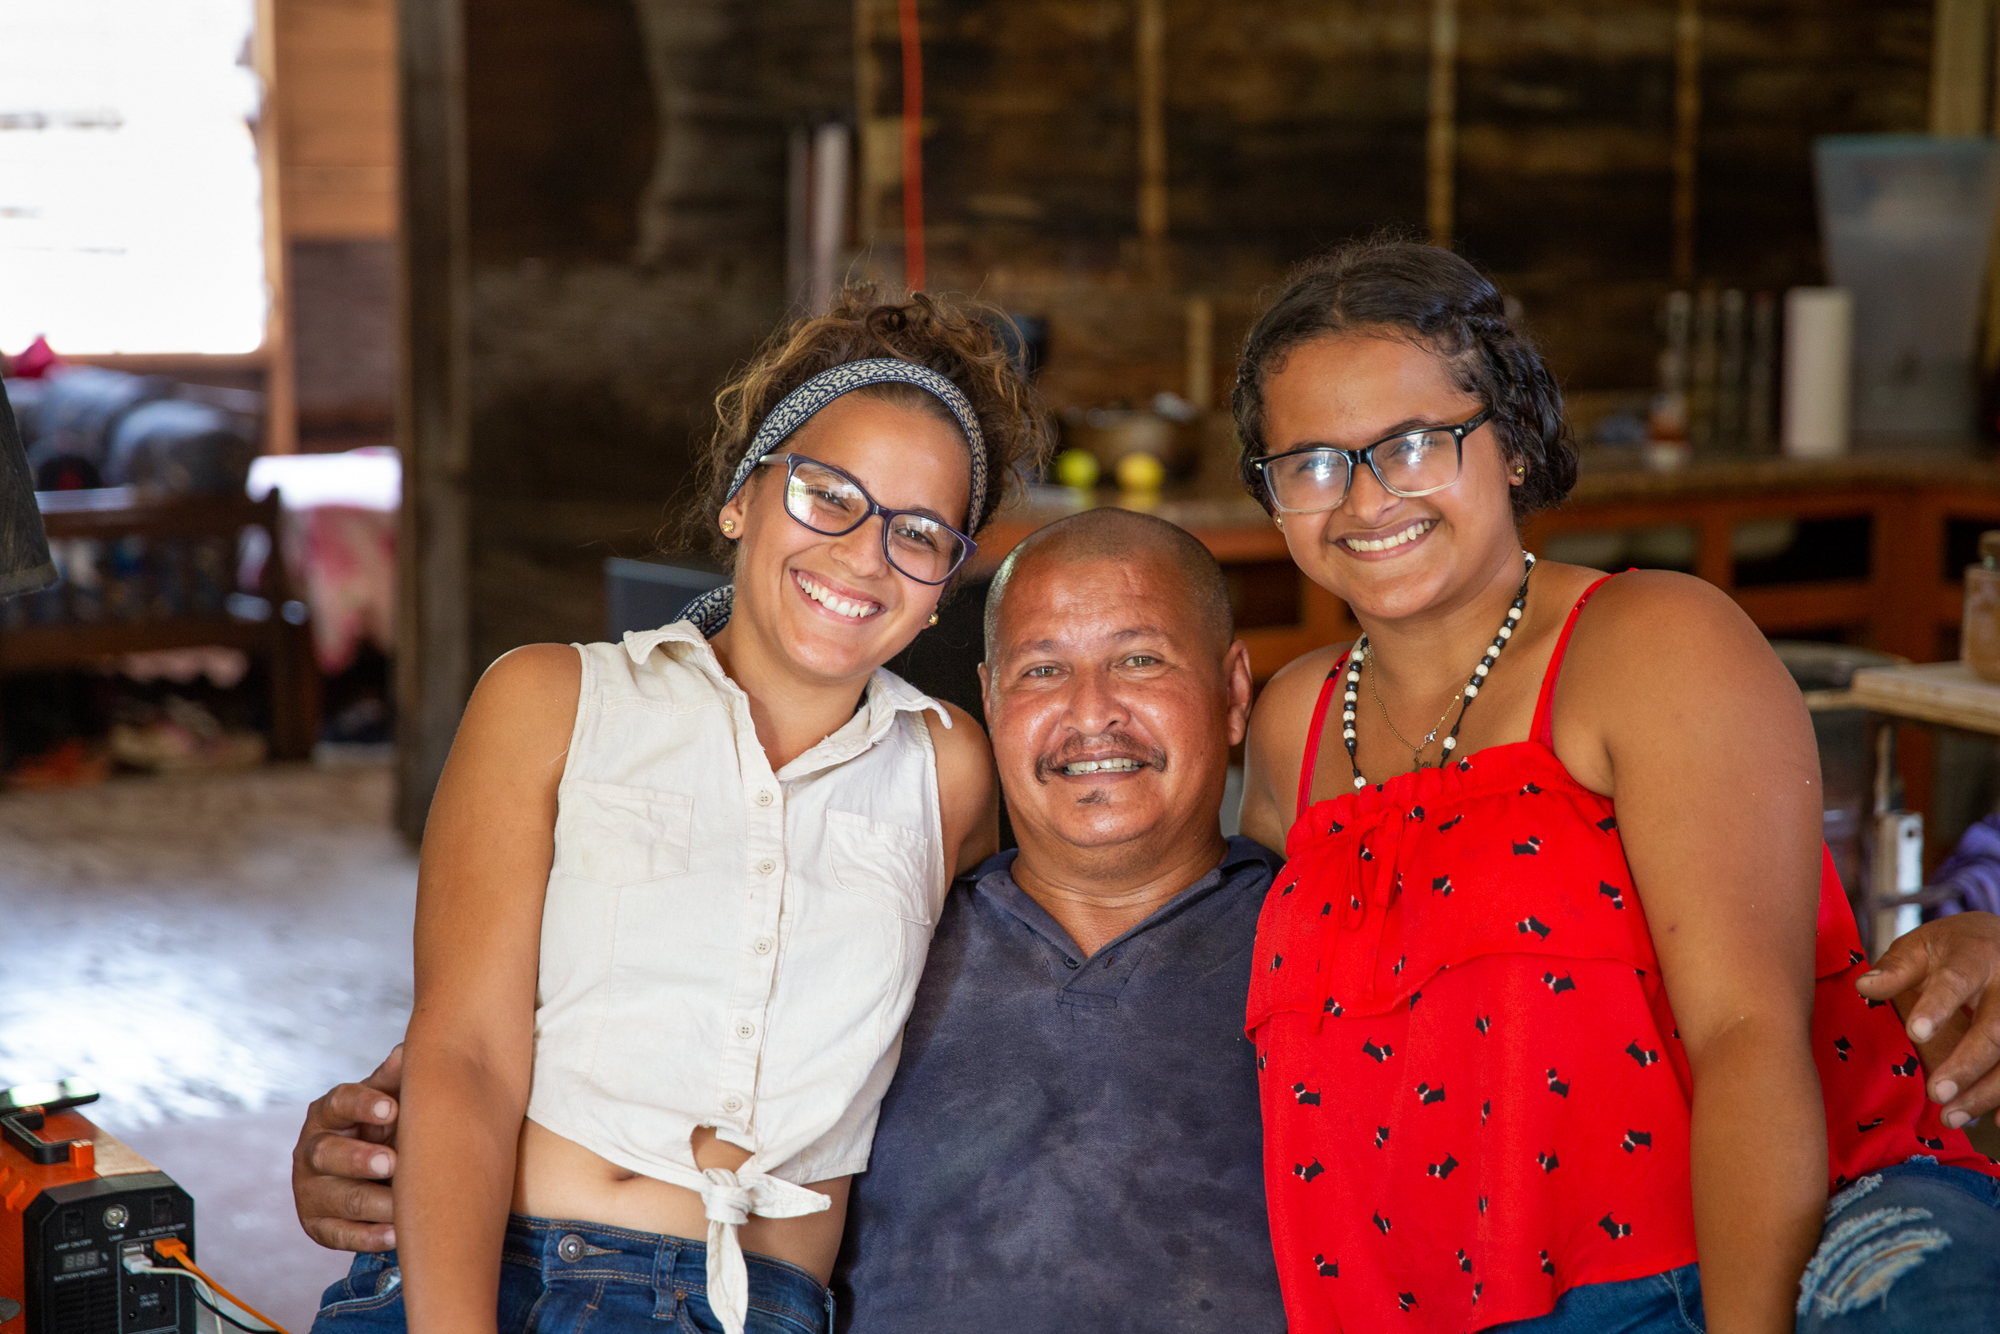 Roberto Cornier and family - Roberto Cornier had 11 strokes in 2017 and was evicted from his home in Peñuelas, Puerto Rico, after Hurricane Maria. His daughters Kenaisha, 21 (left), and Gabriela, 15, took him to the hospital and found a new place for the family to stay – a derelict, abandoned school. (Ellen O'Brien/News21)